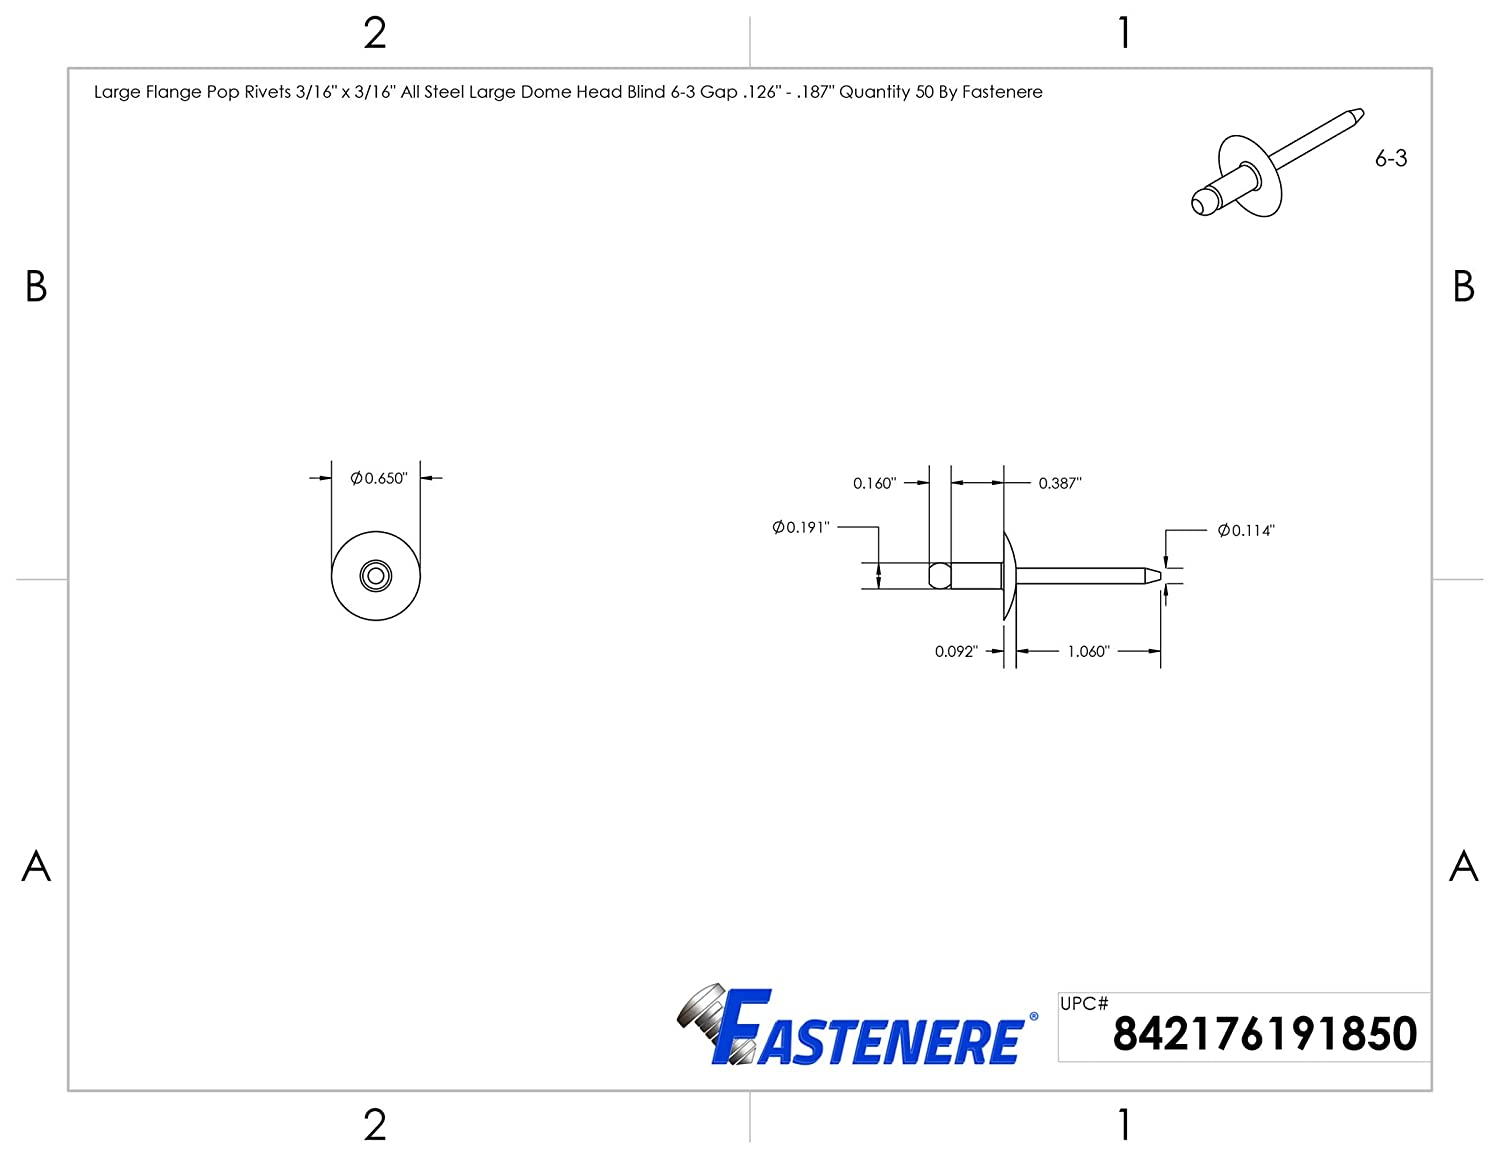 Large Flange Pop Rivets 1//4 x 3//8 All Steel Large Dome Head Blind 8-6 Gap .251 .375 Quantity 25 by Fastenere